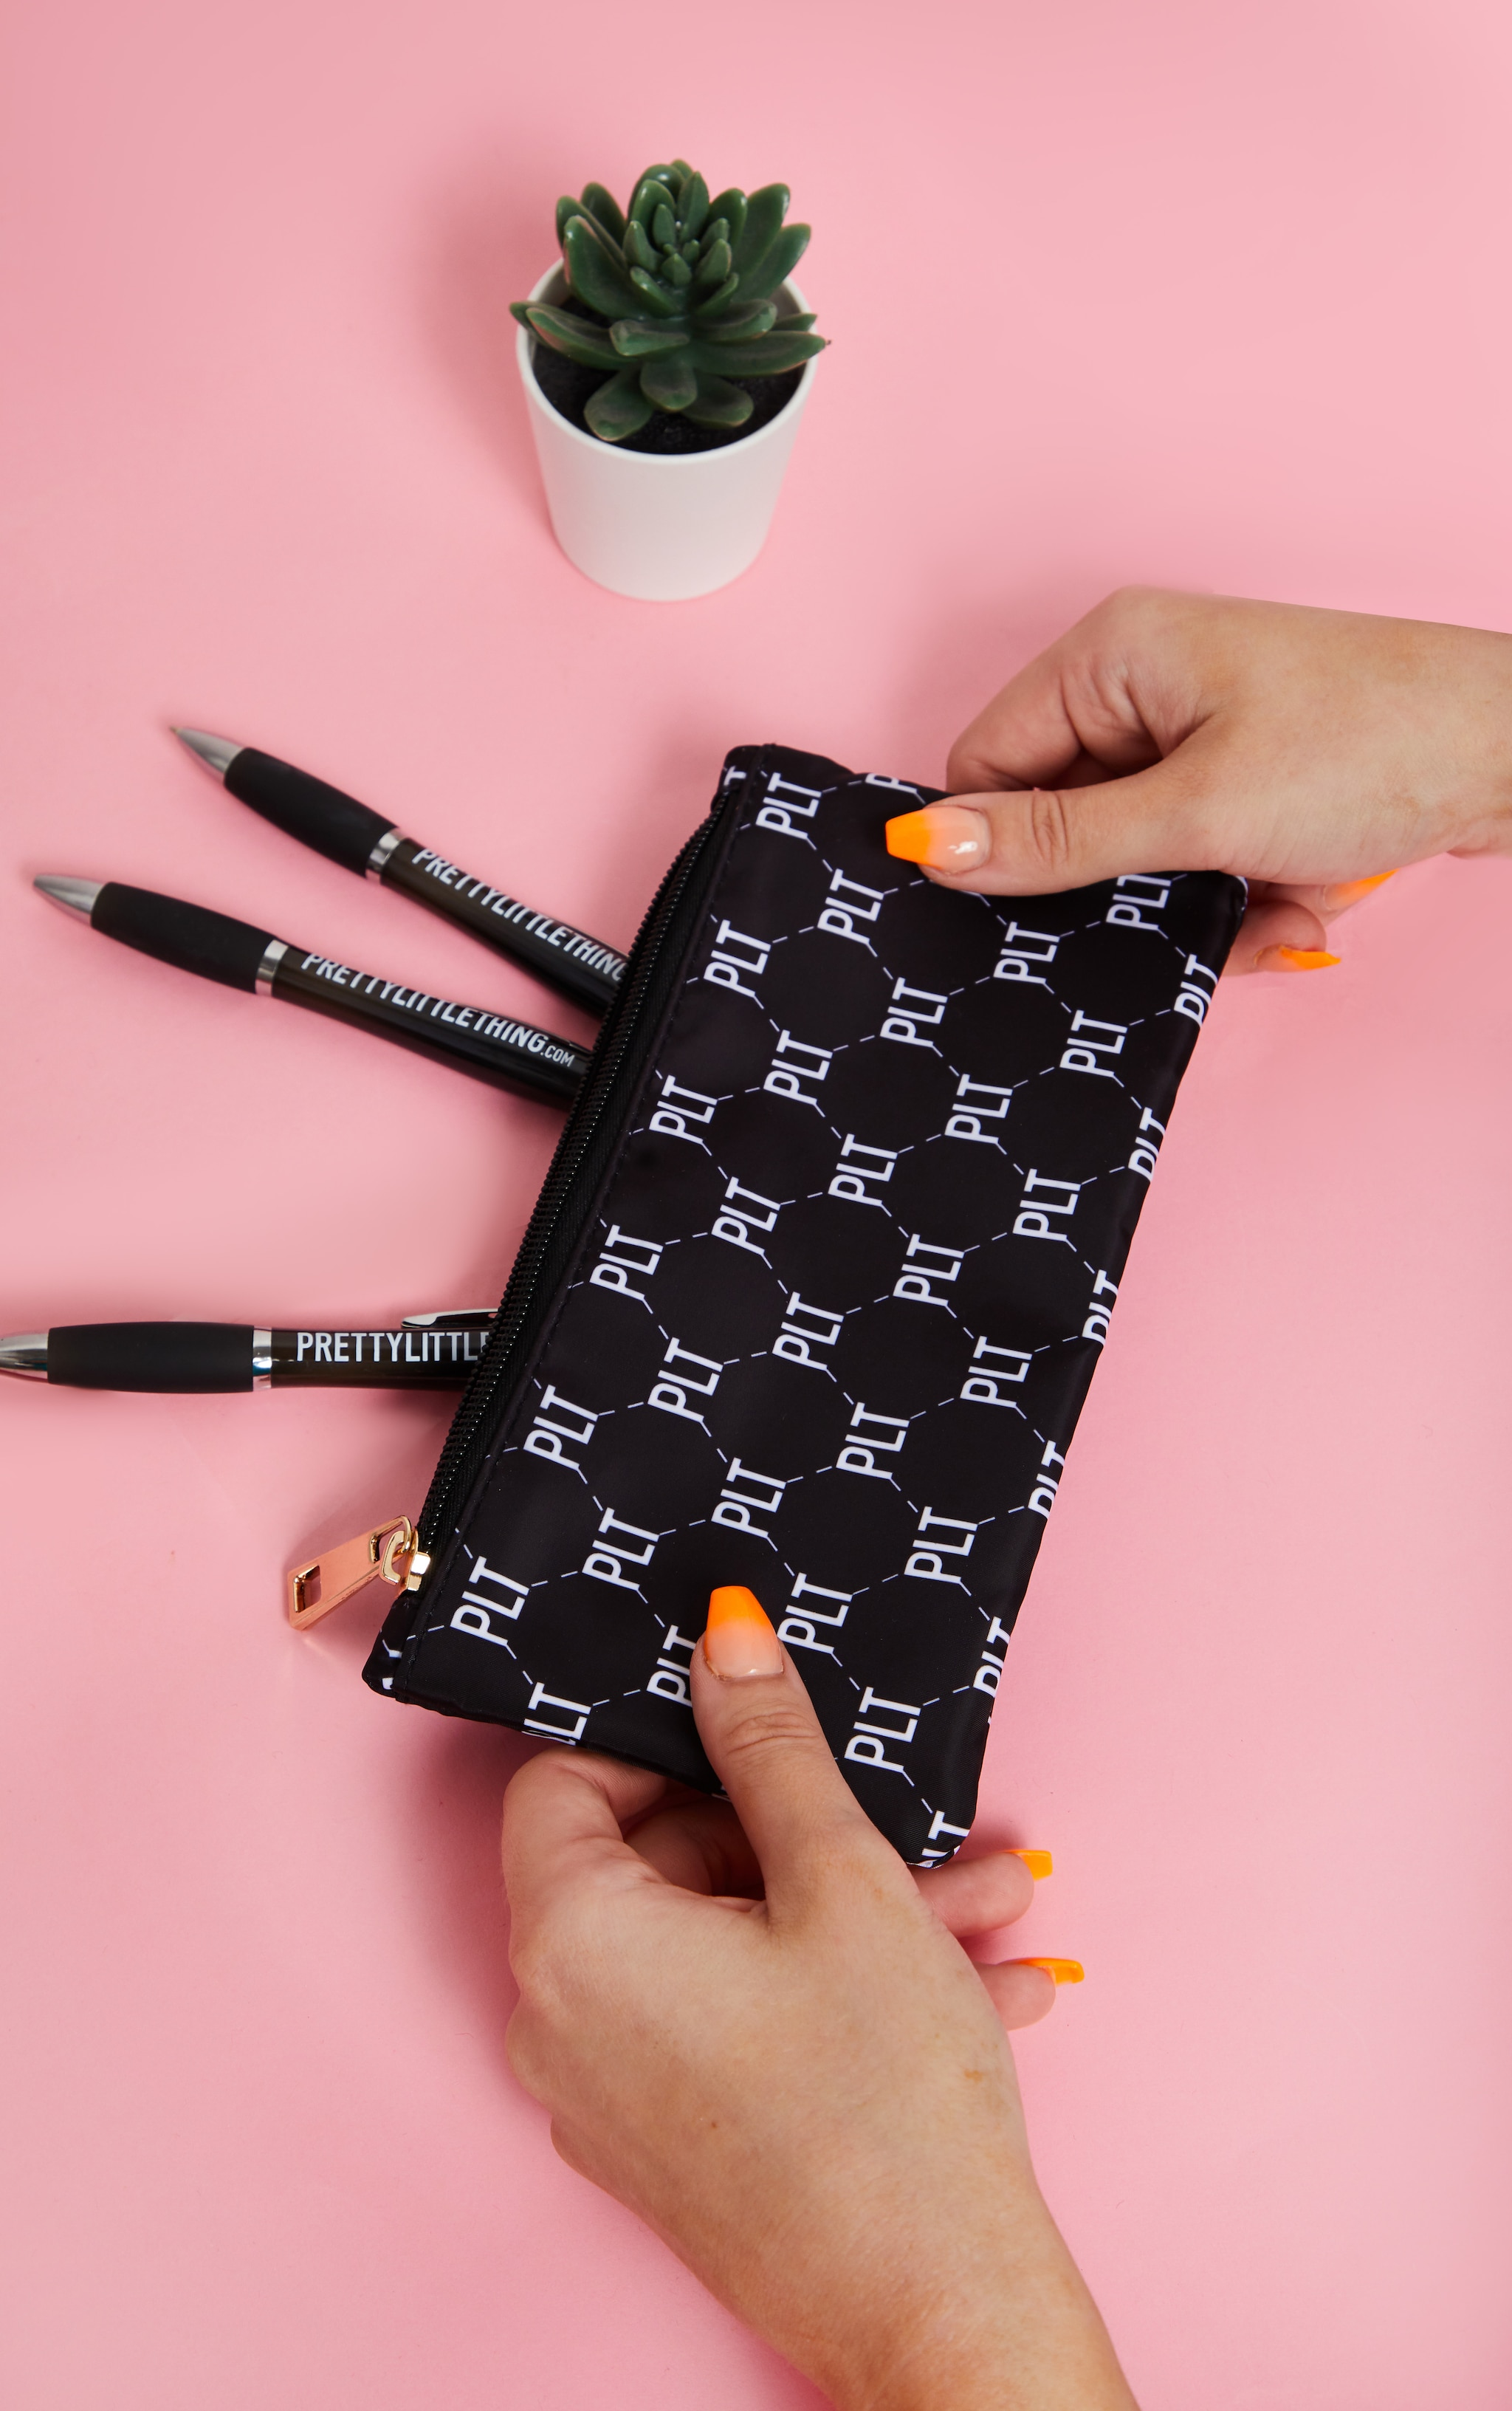 PRETTYLITTLETHING Monogram Monochrome Pencil Case 1